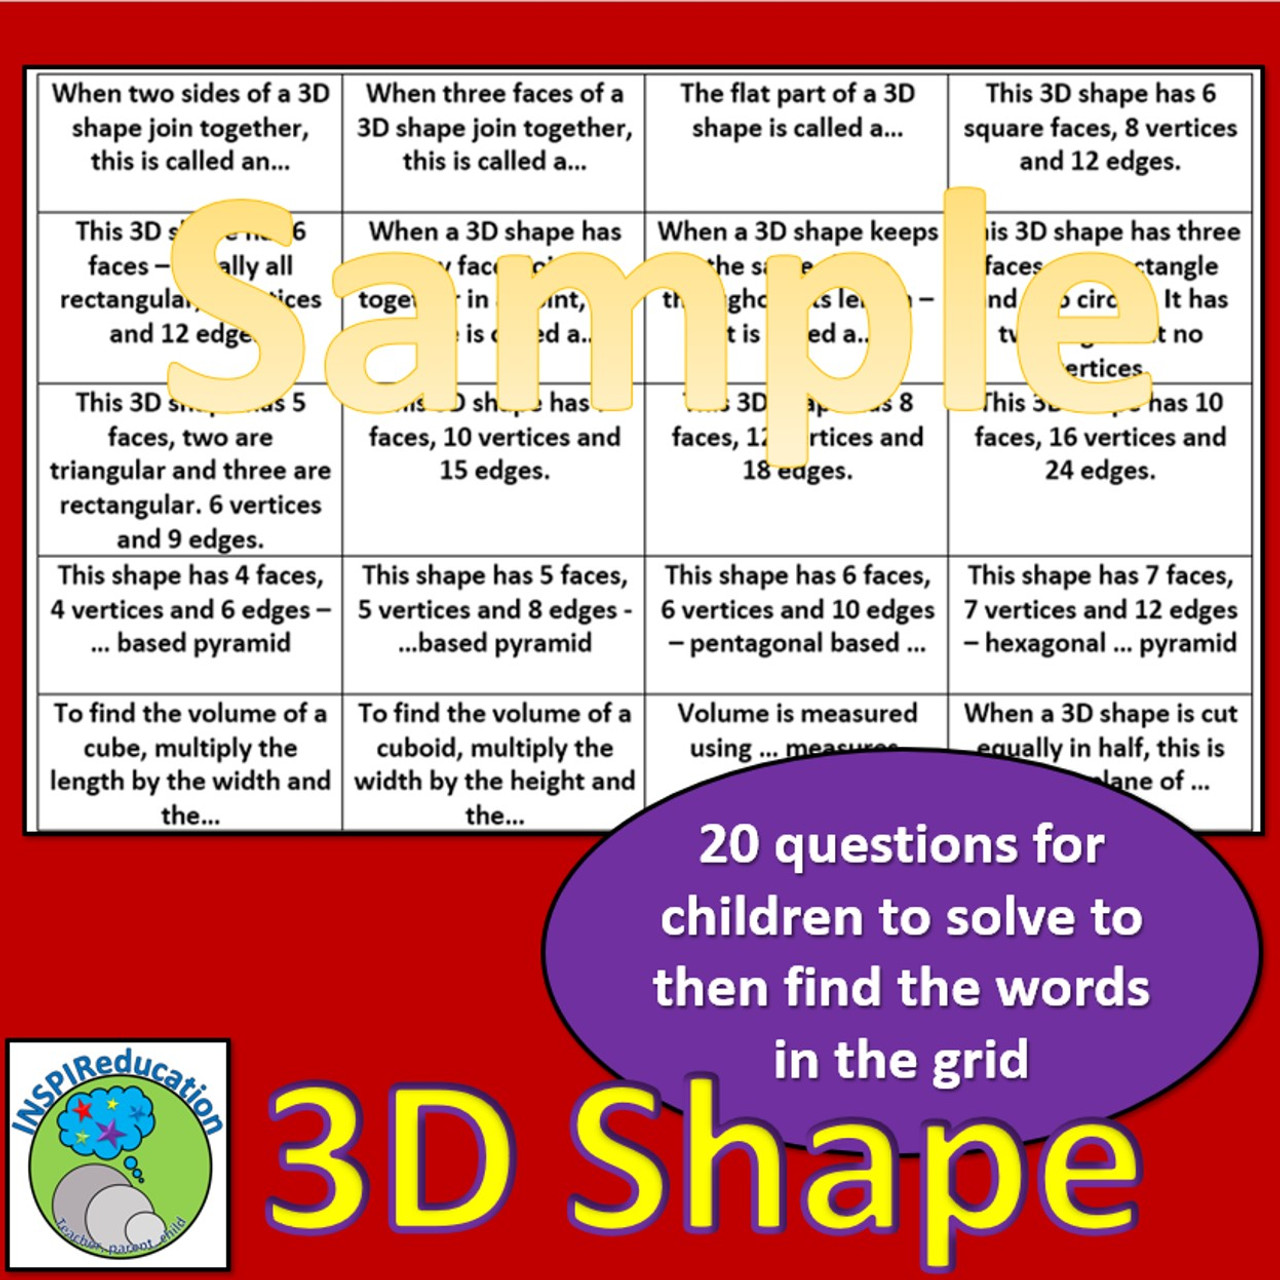 3D Shape Word Search - Solve the 20 Questions to find the 3D shapes